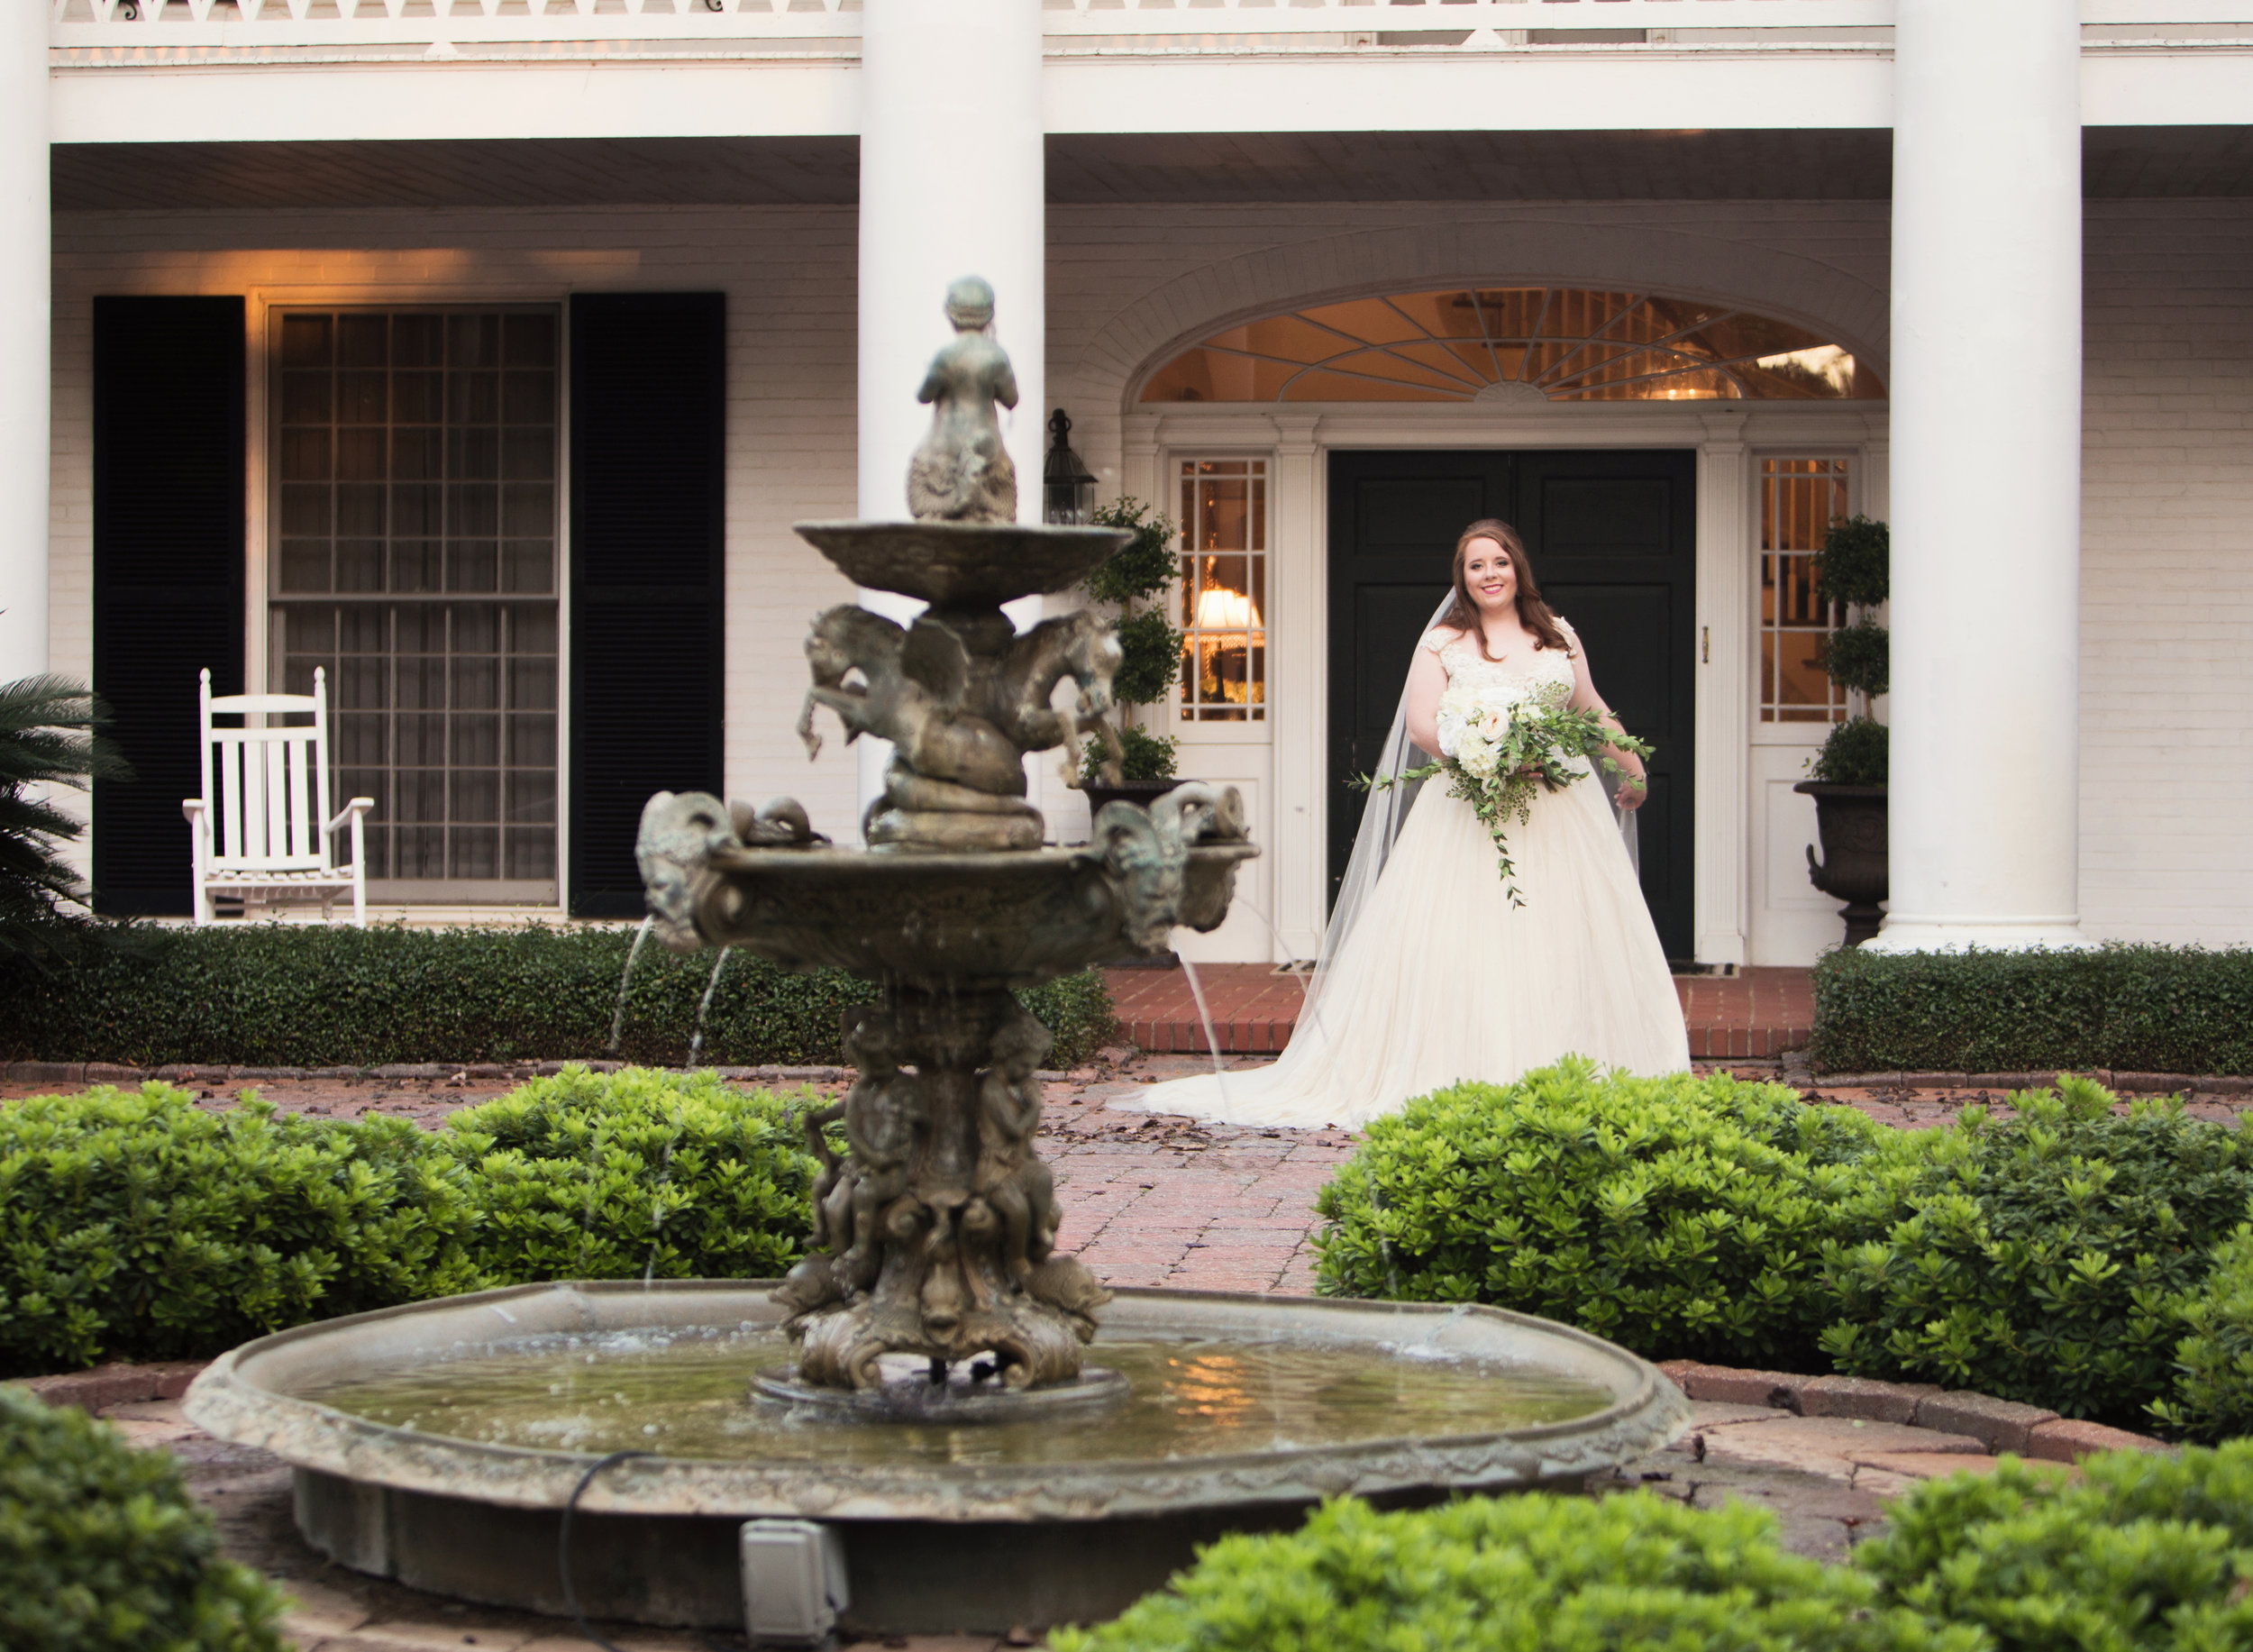 Bridal Portrait at CedarCroft Plantation near Shreveport, Louisiana